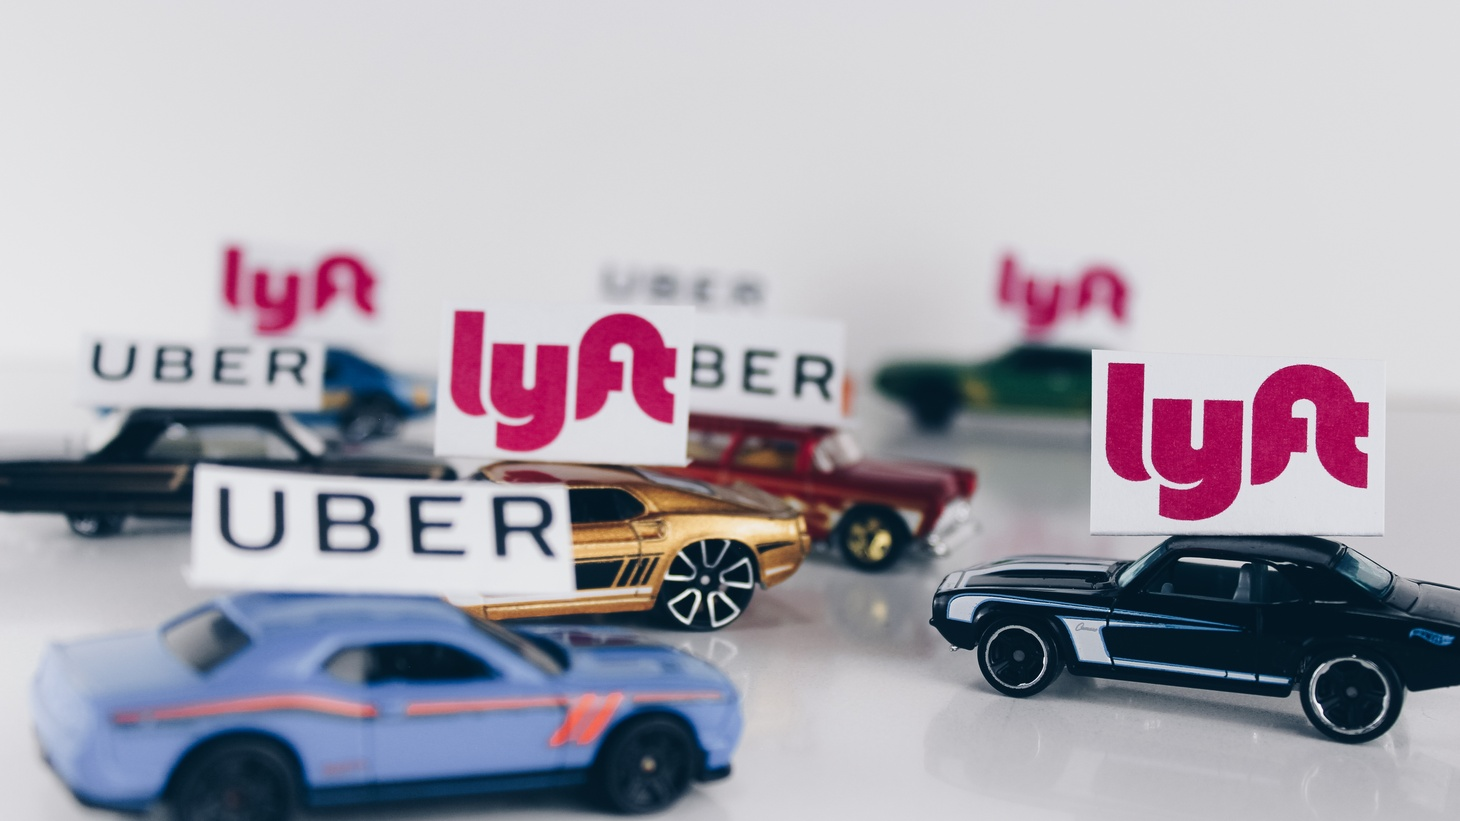 Uber and Lyft want to exempt drivers from full employment protections.